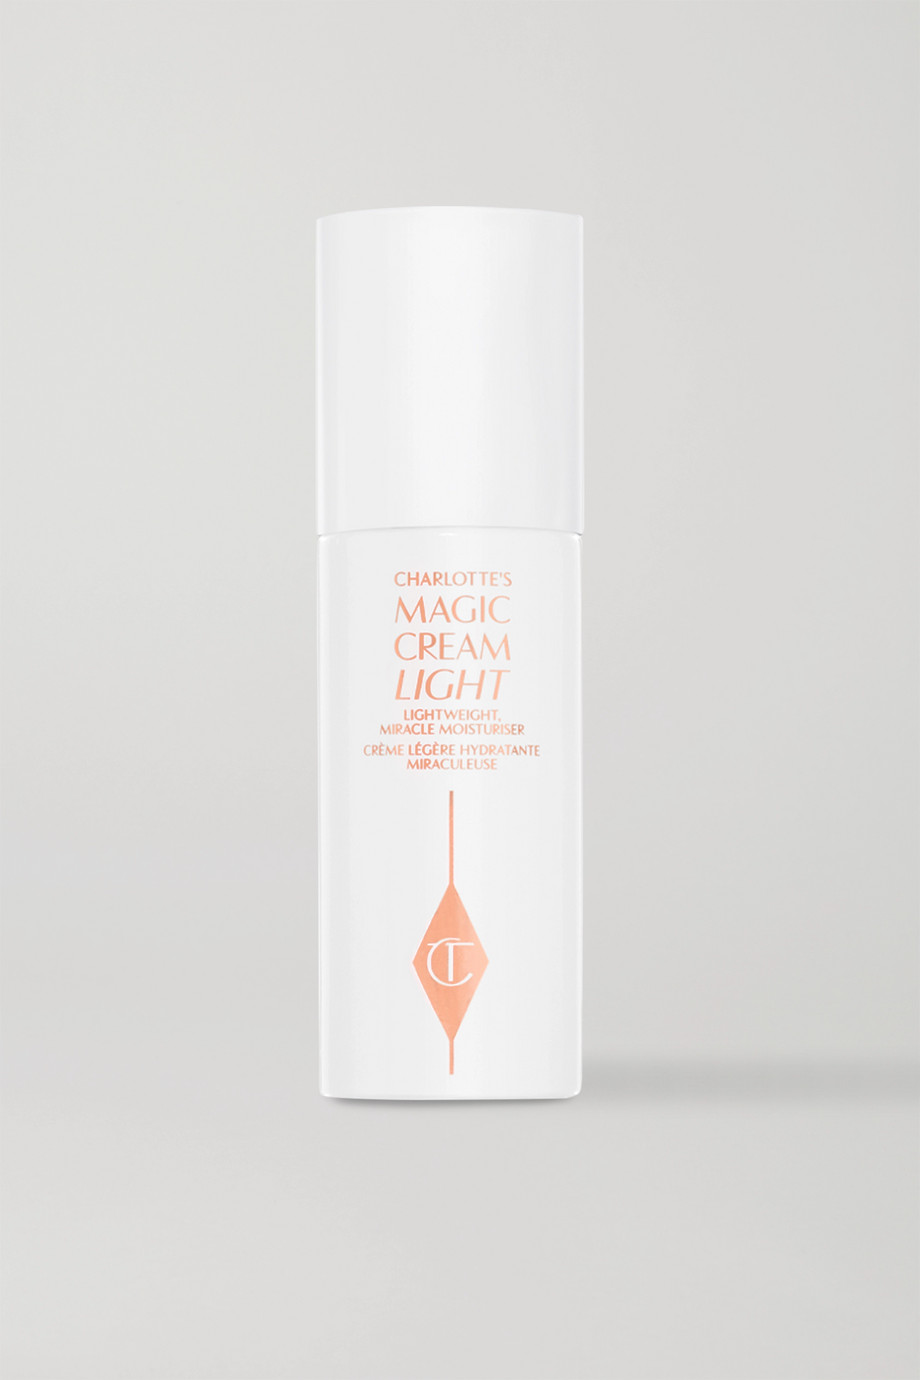 Charlotte Tilbury Charlotte's Magic Cream Light Moisturizer, 15ml